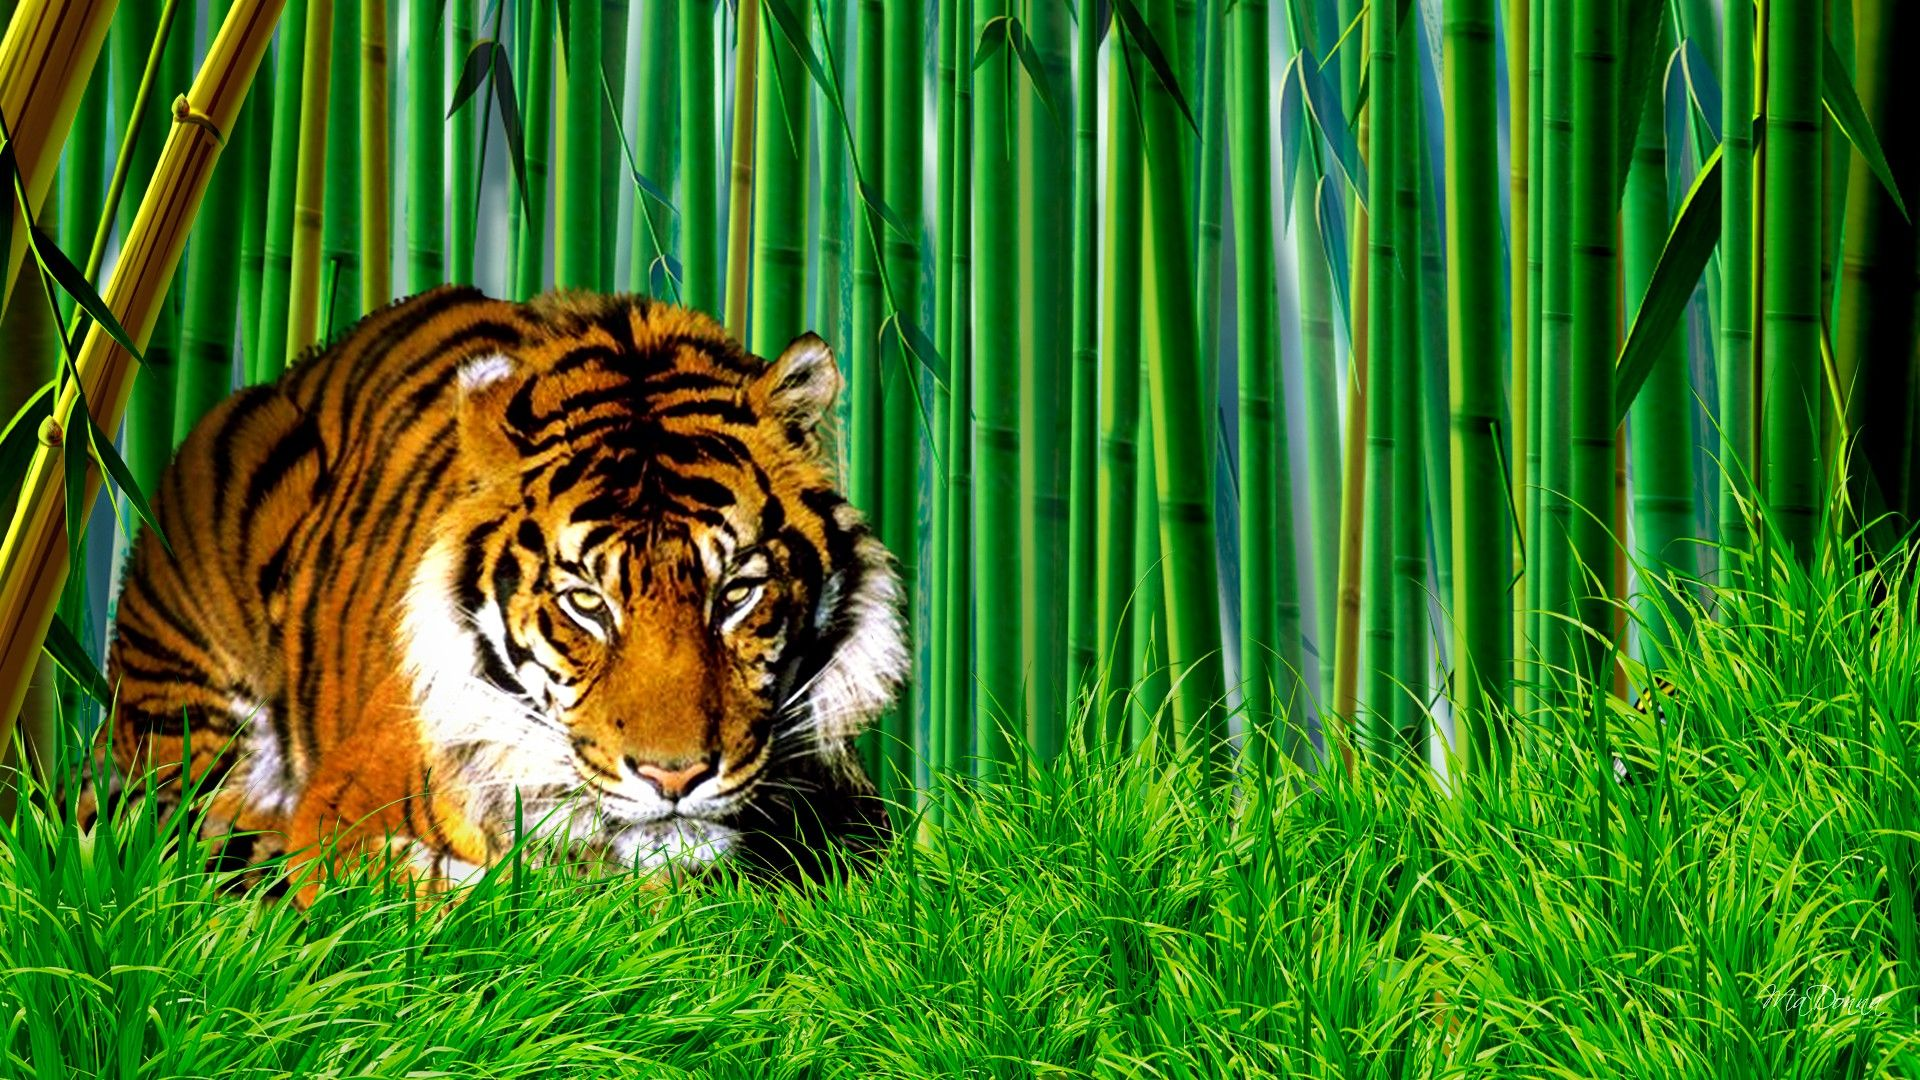 asian tiger in forest latest desktop wallpapers | hd wallpapers